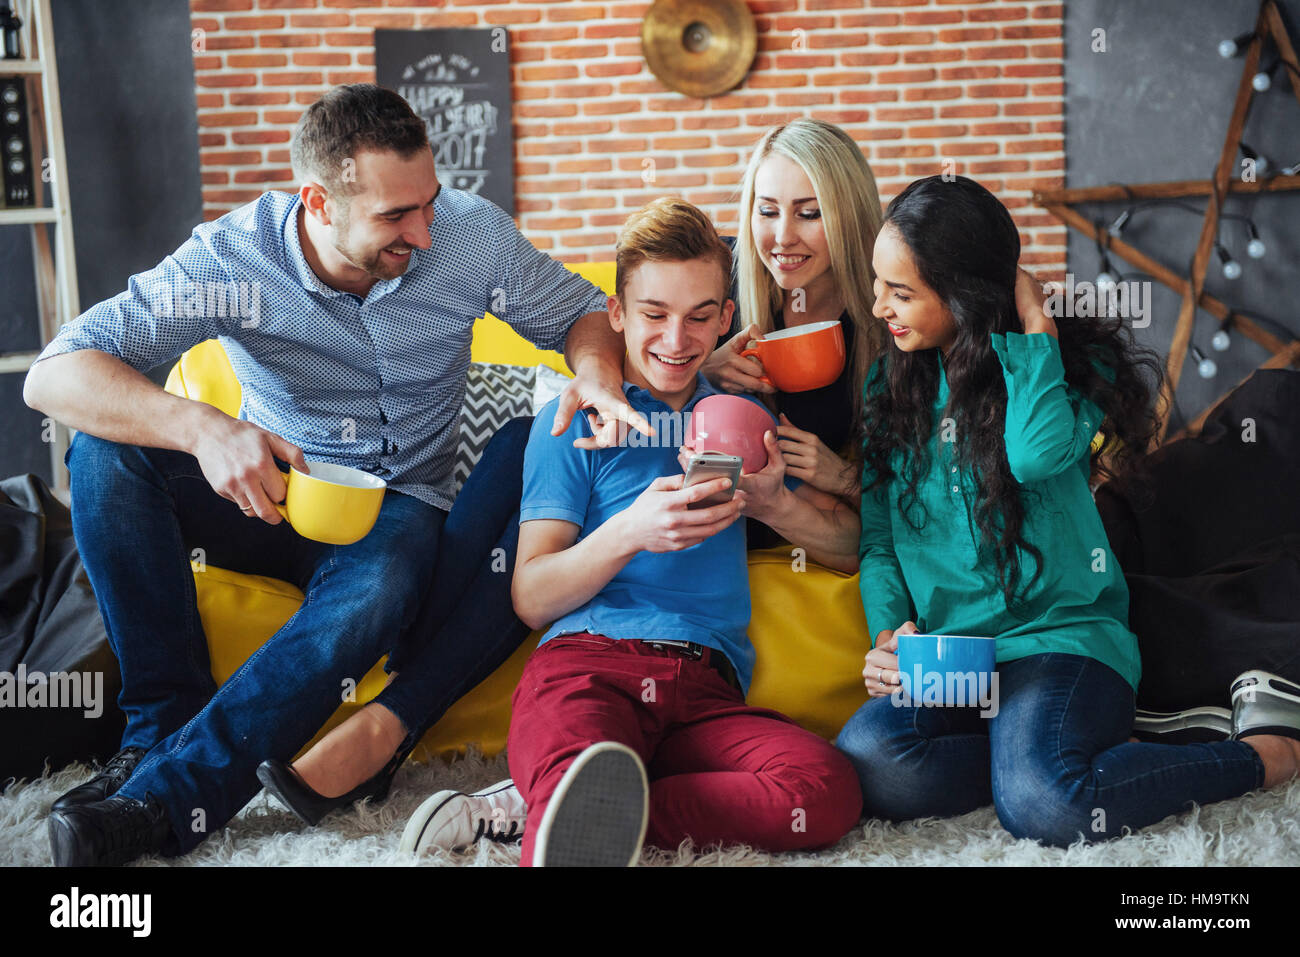 Group portrait of Cheerful old friends communicate with each other, friend posing on cafe, Urban style people having - Stock Image